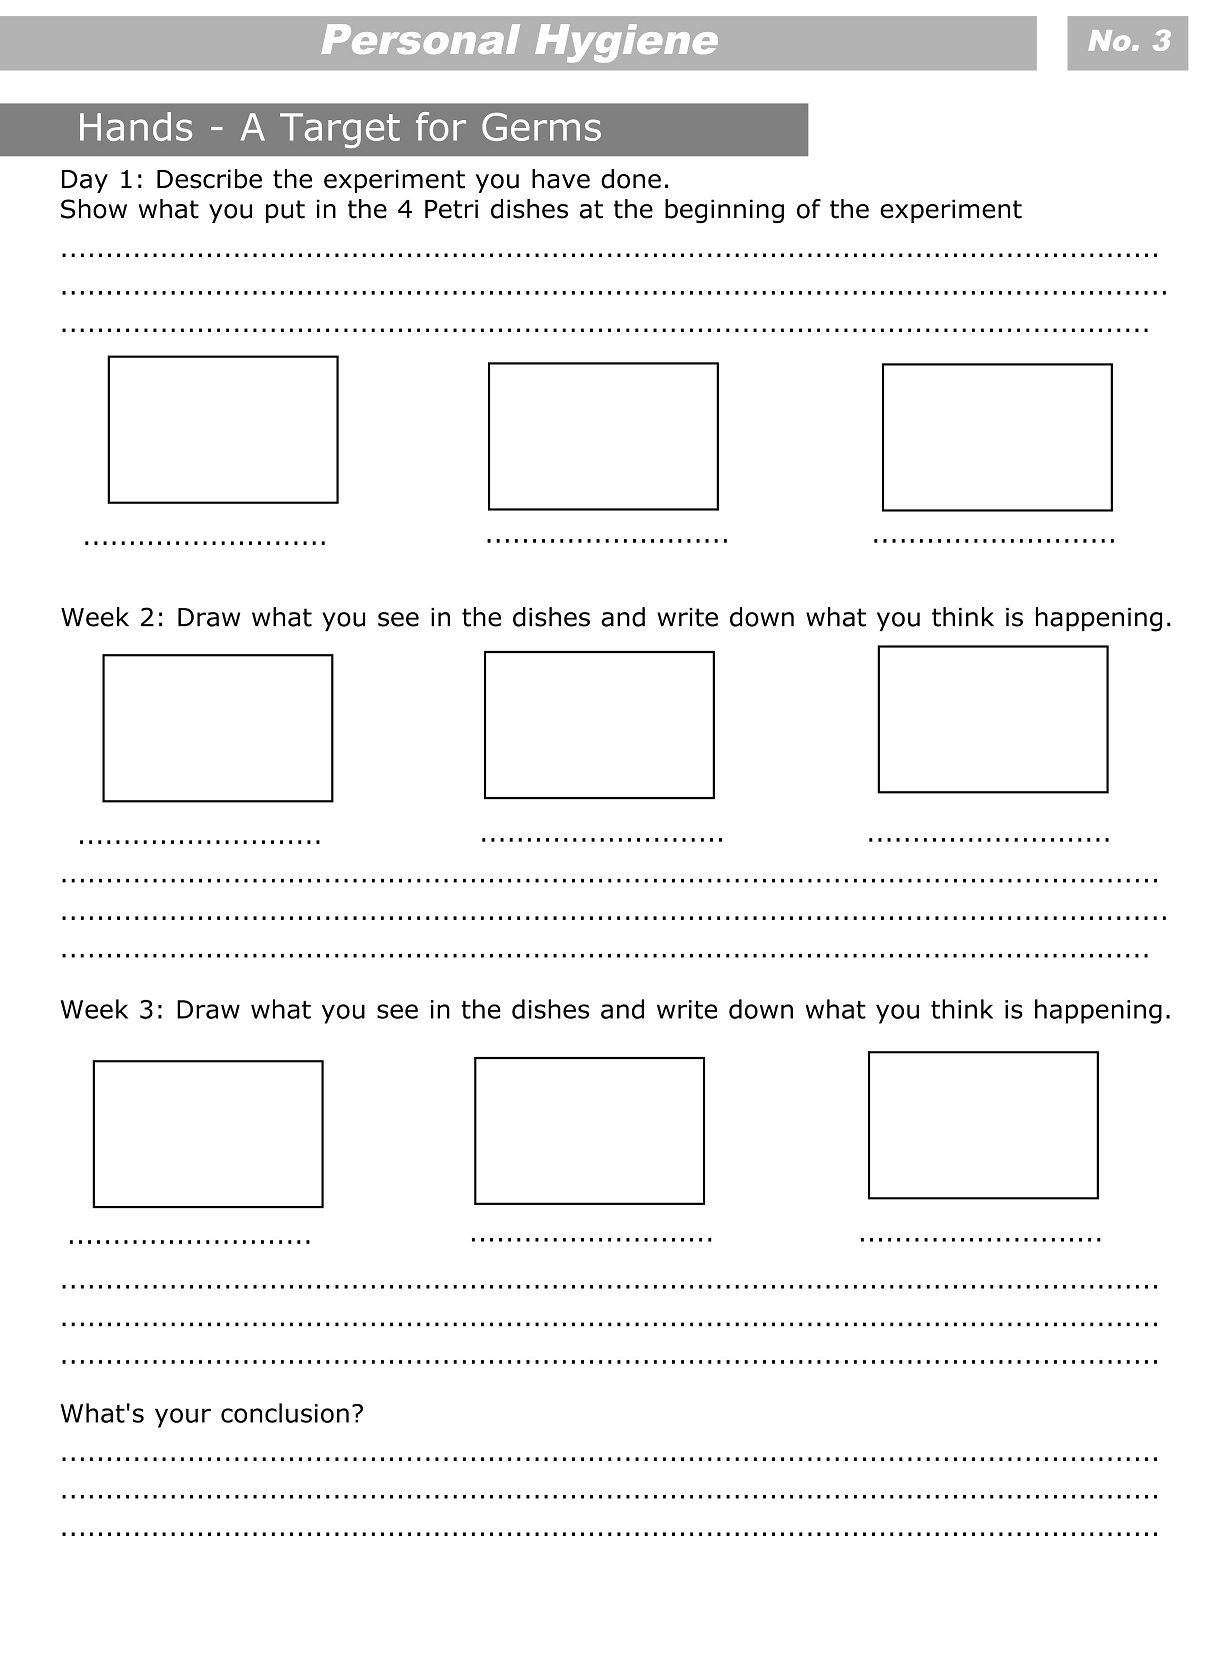 personal hygiene worksheets for kids level 3 3 | Health class ...